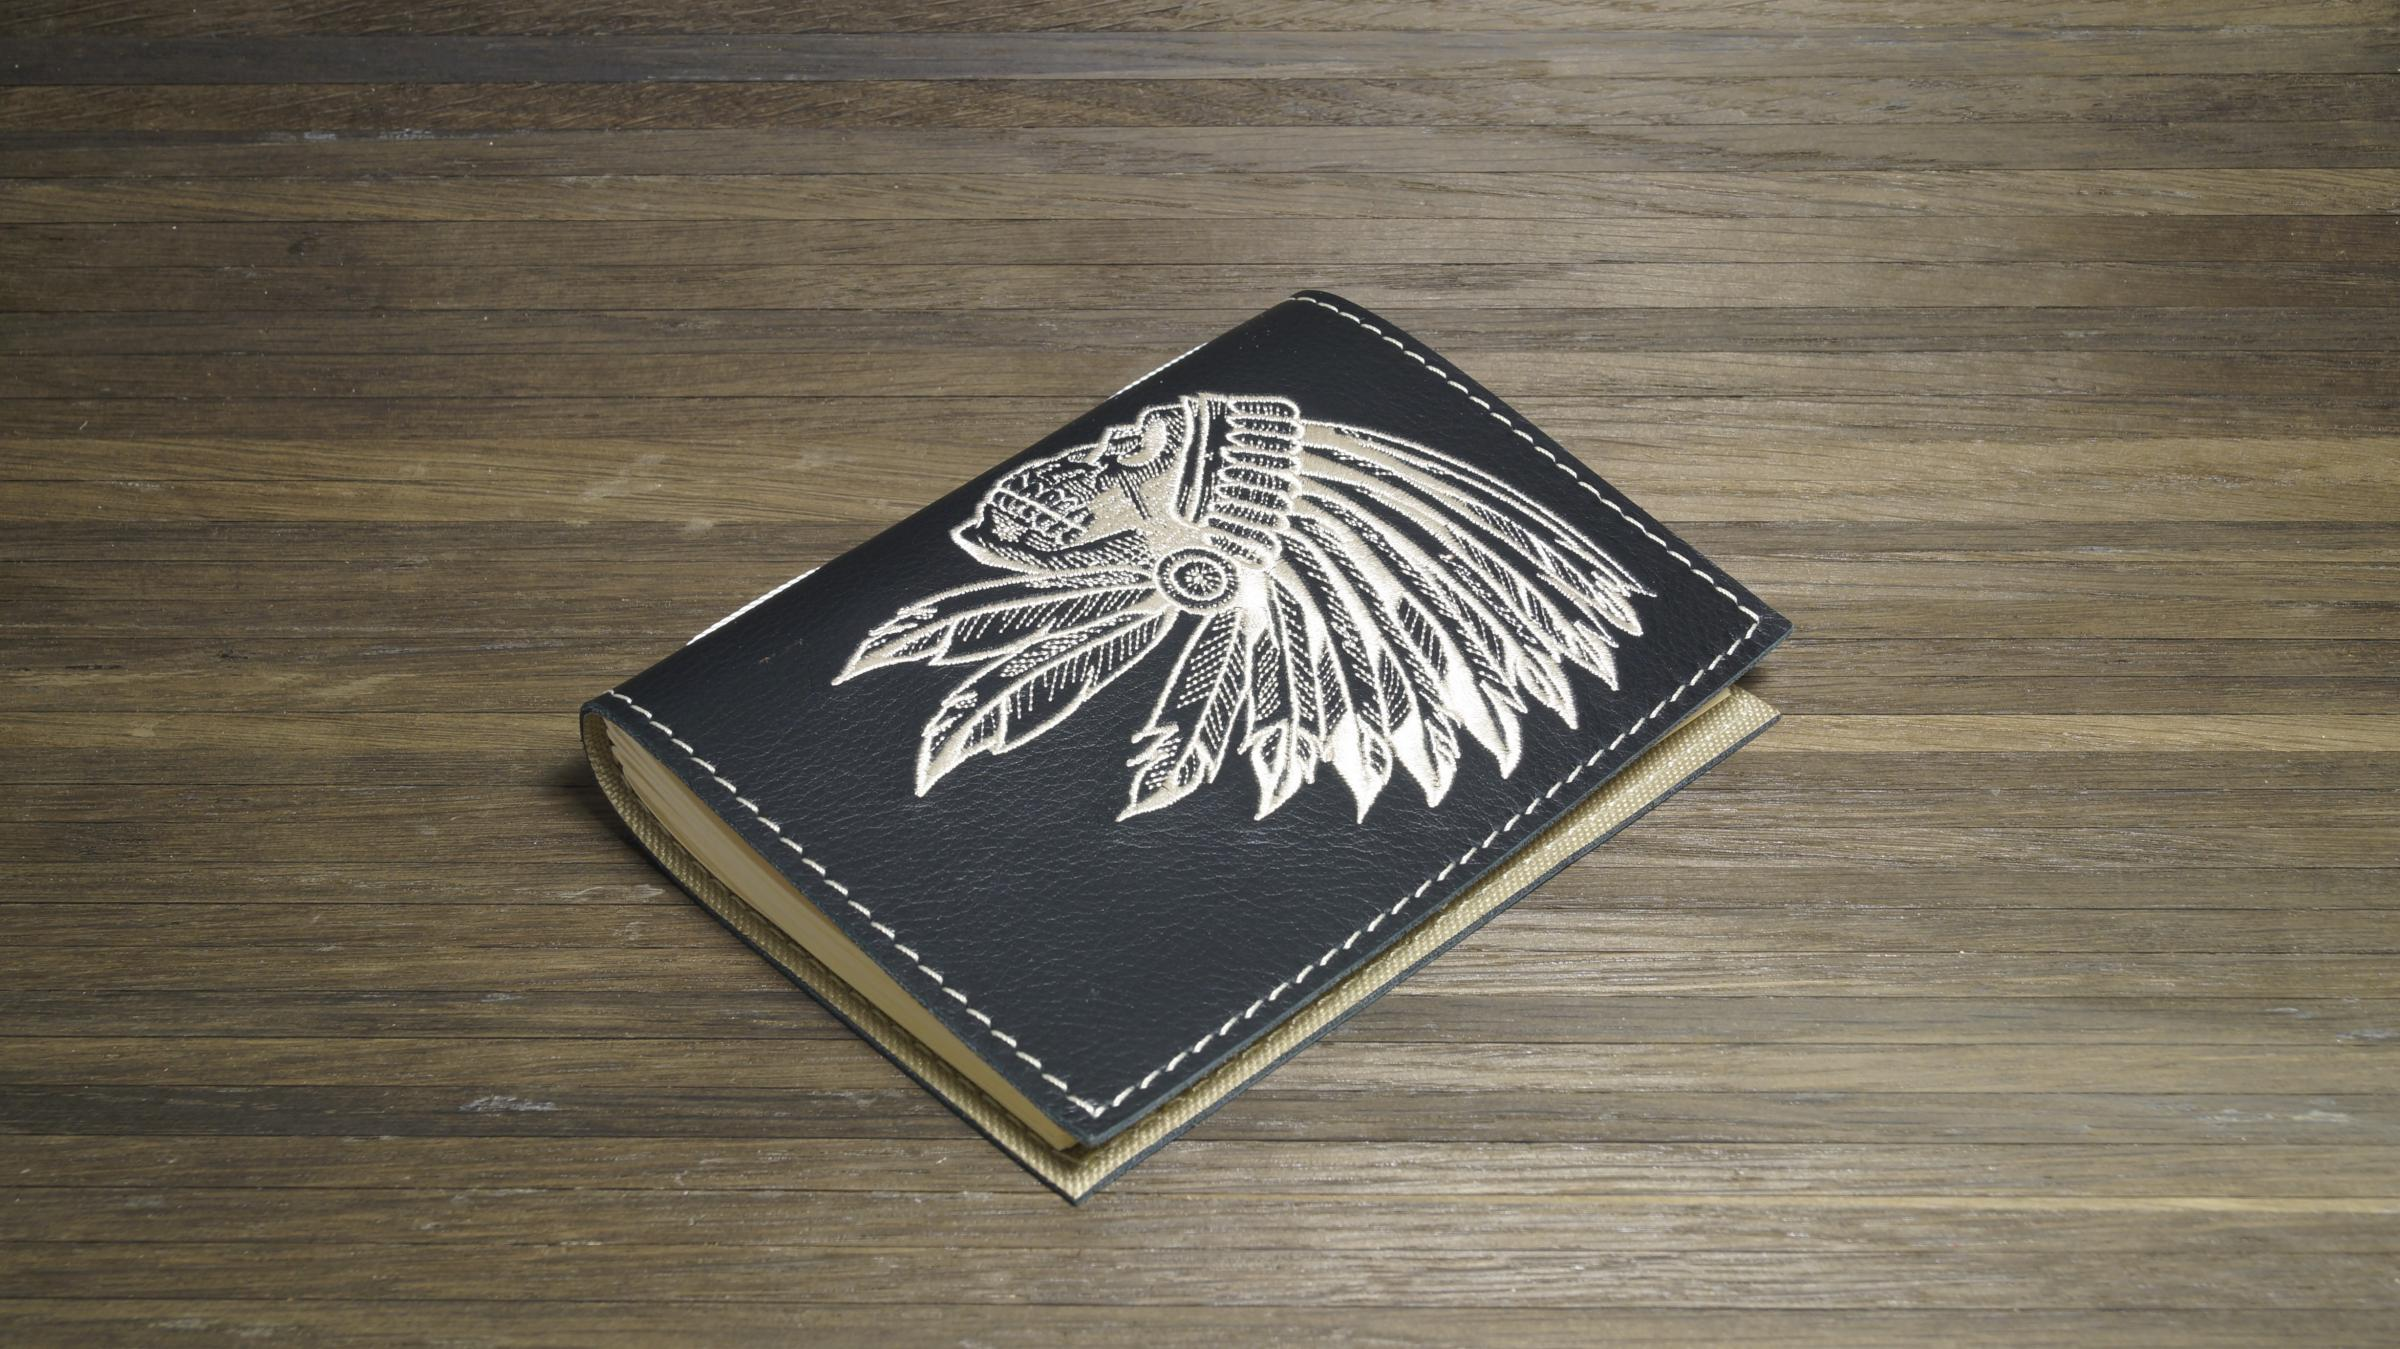 Embroidered notepad cover with Indian skull design